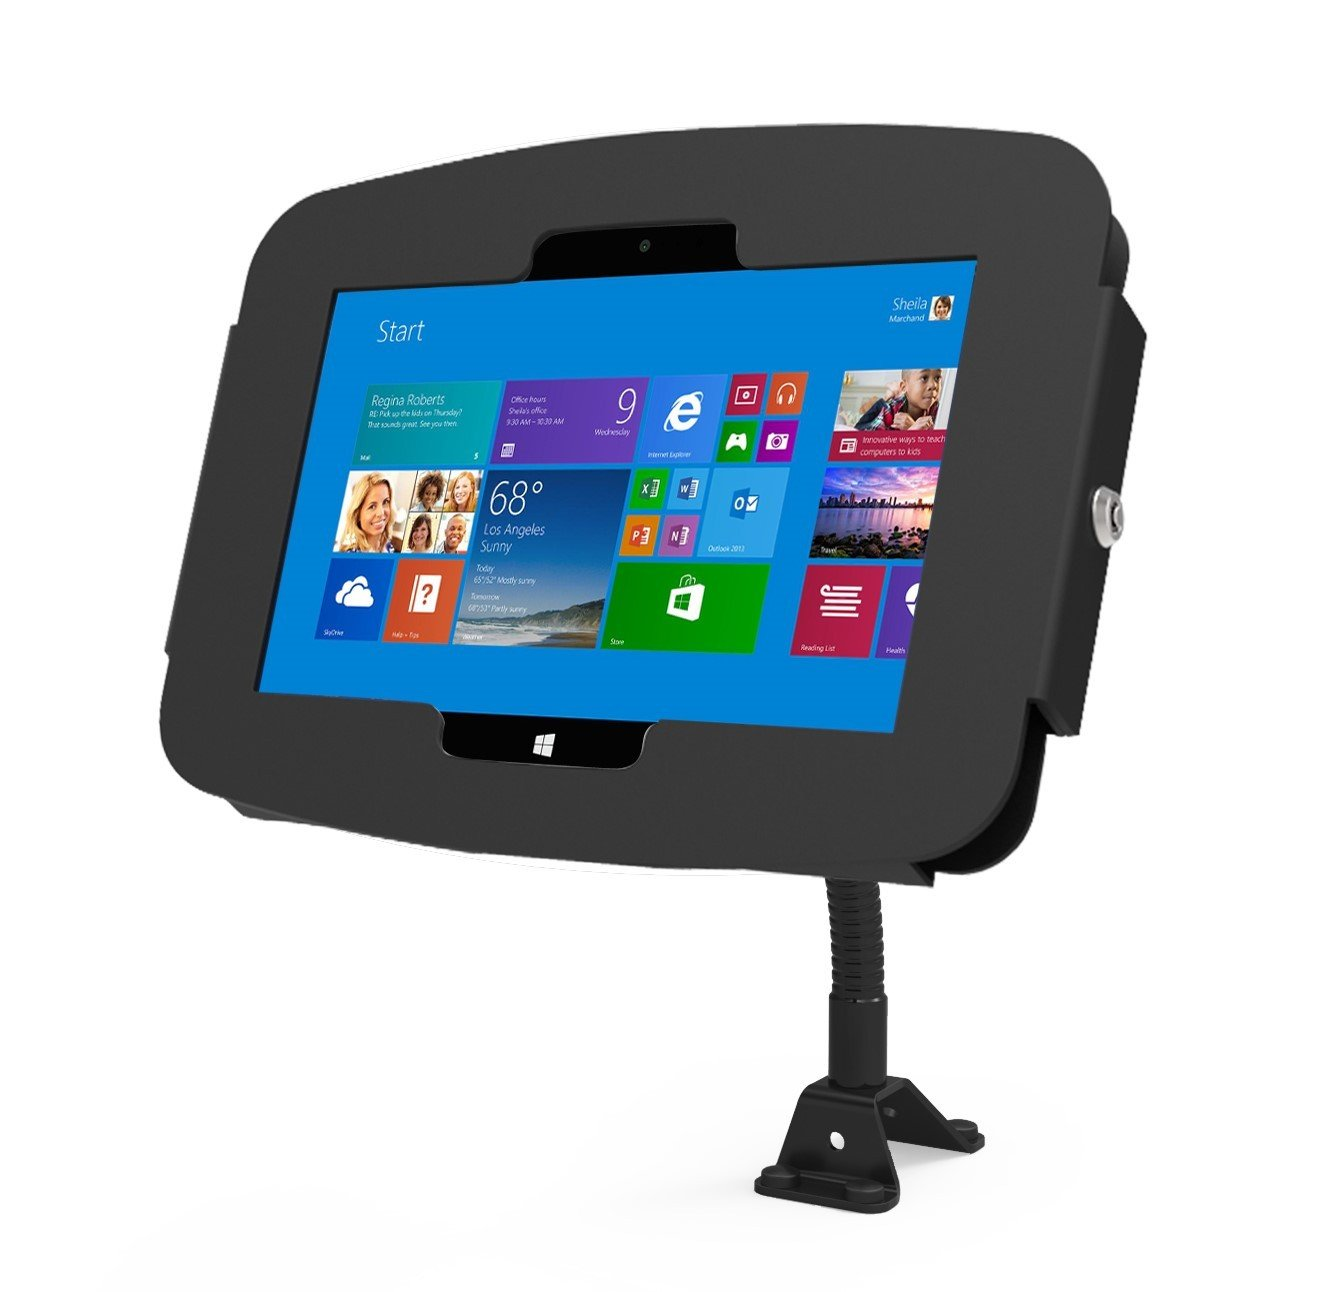 Maclocks 159B518GEB Secure Space Enclosure Stand Kiosk with Flex Arm for Surface 3 10.8 Inch (Black)